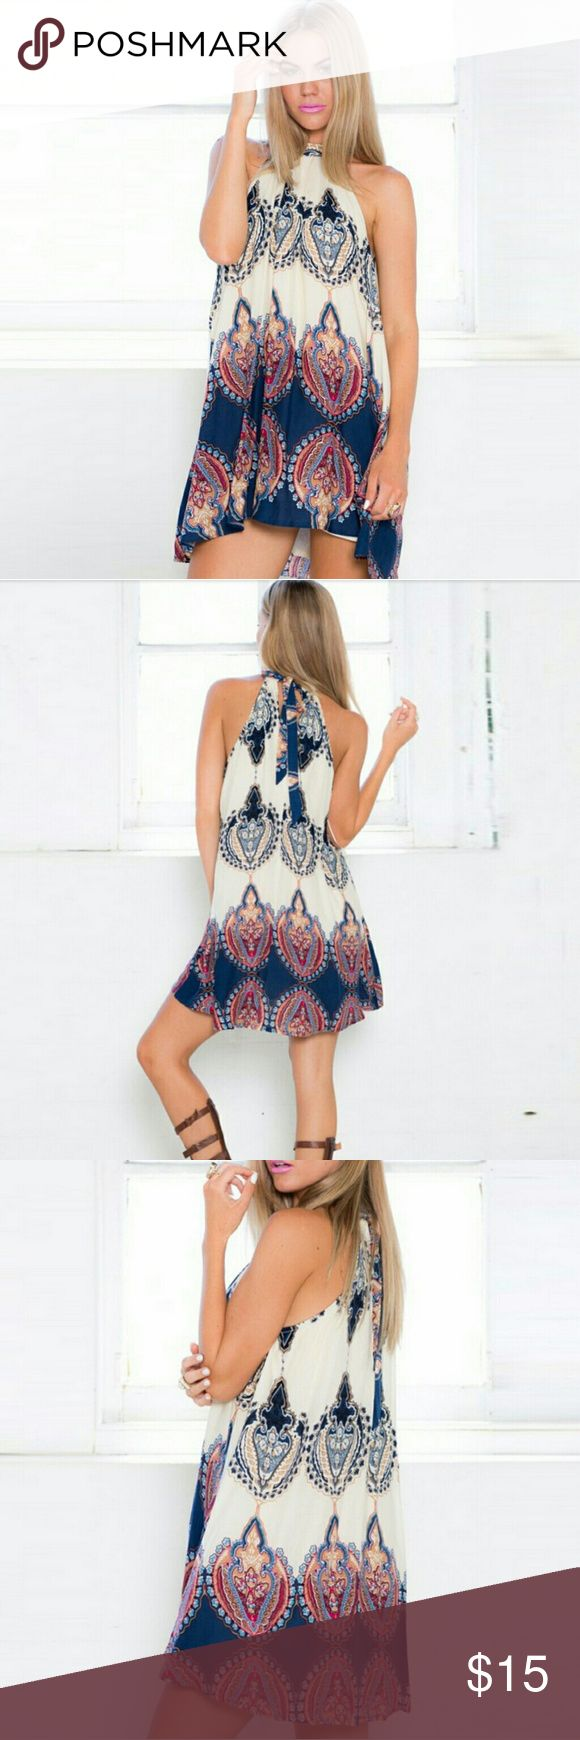 """Sexy Women Boho Mini Dress Very sexy and fresh floral sundress. Color: Navy-White. Material : Cotton blend. Size: Medium Measures : Bust 37""""in. Length 30""""in. Ealey Fuchi Dresses Mini"""